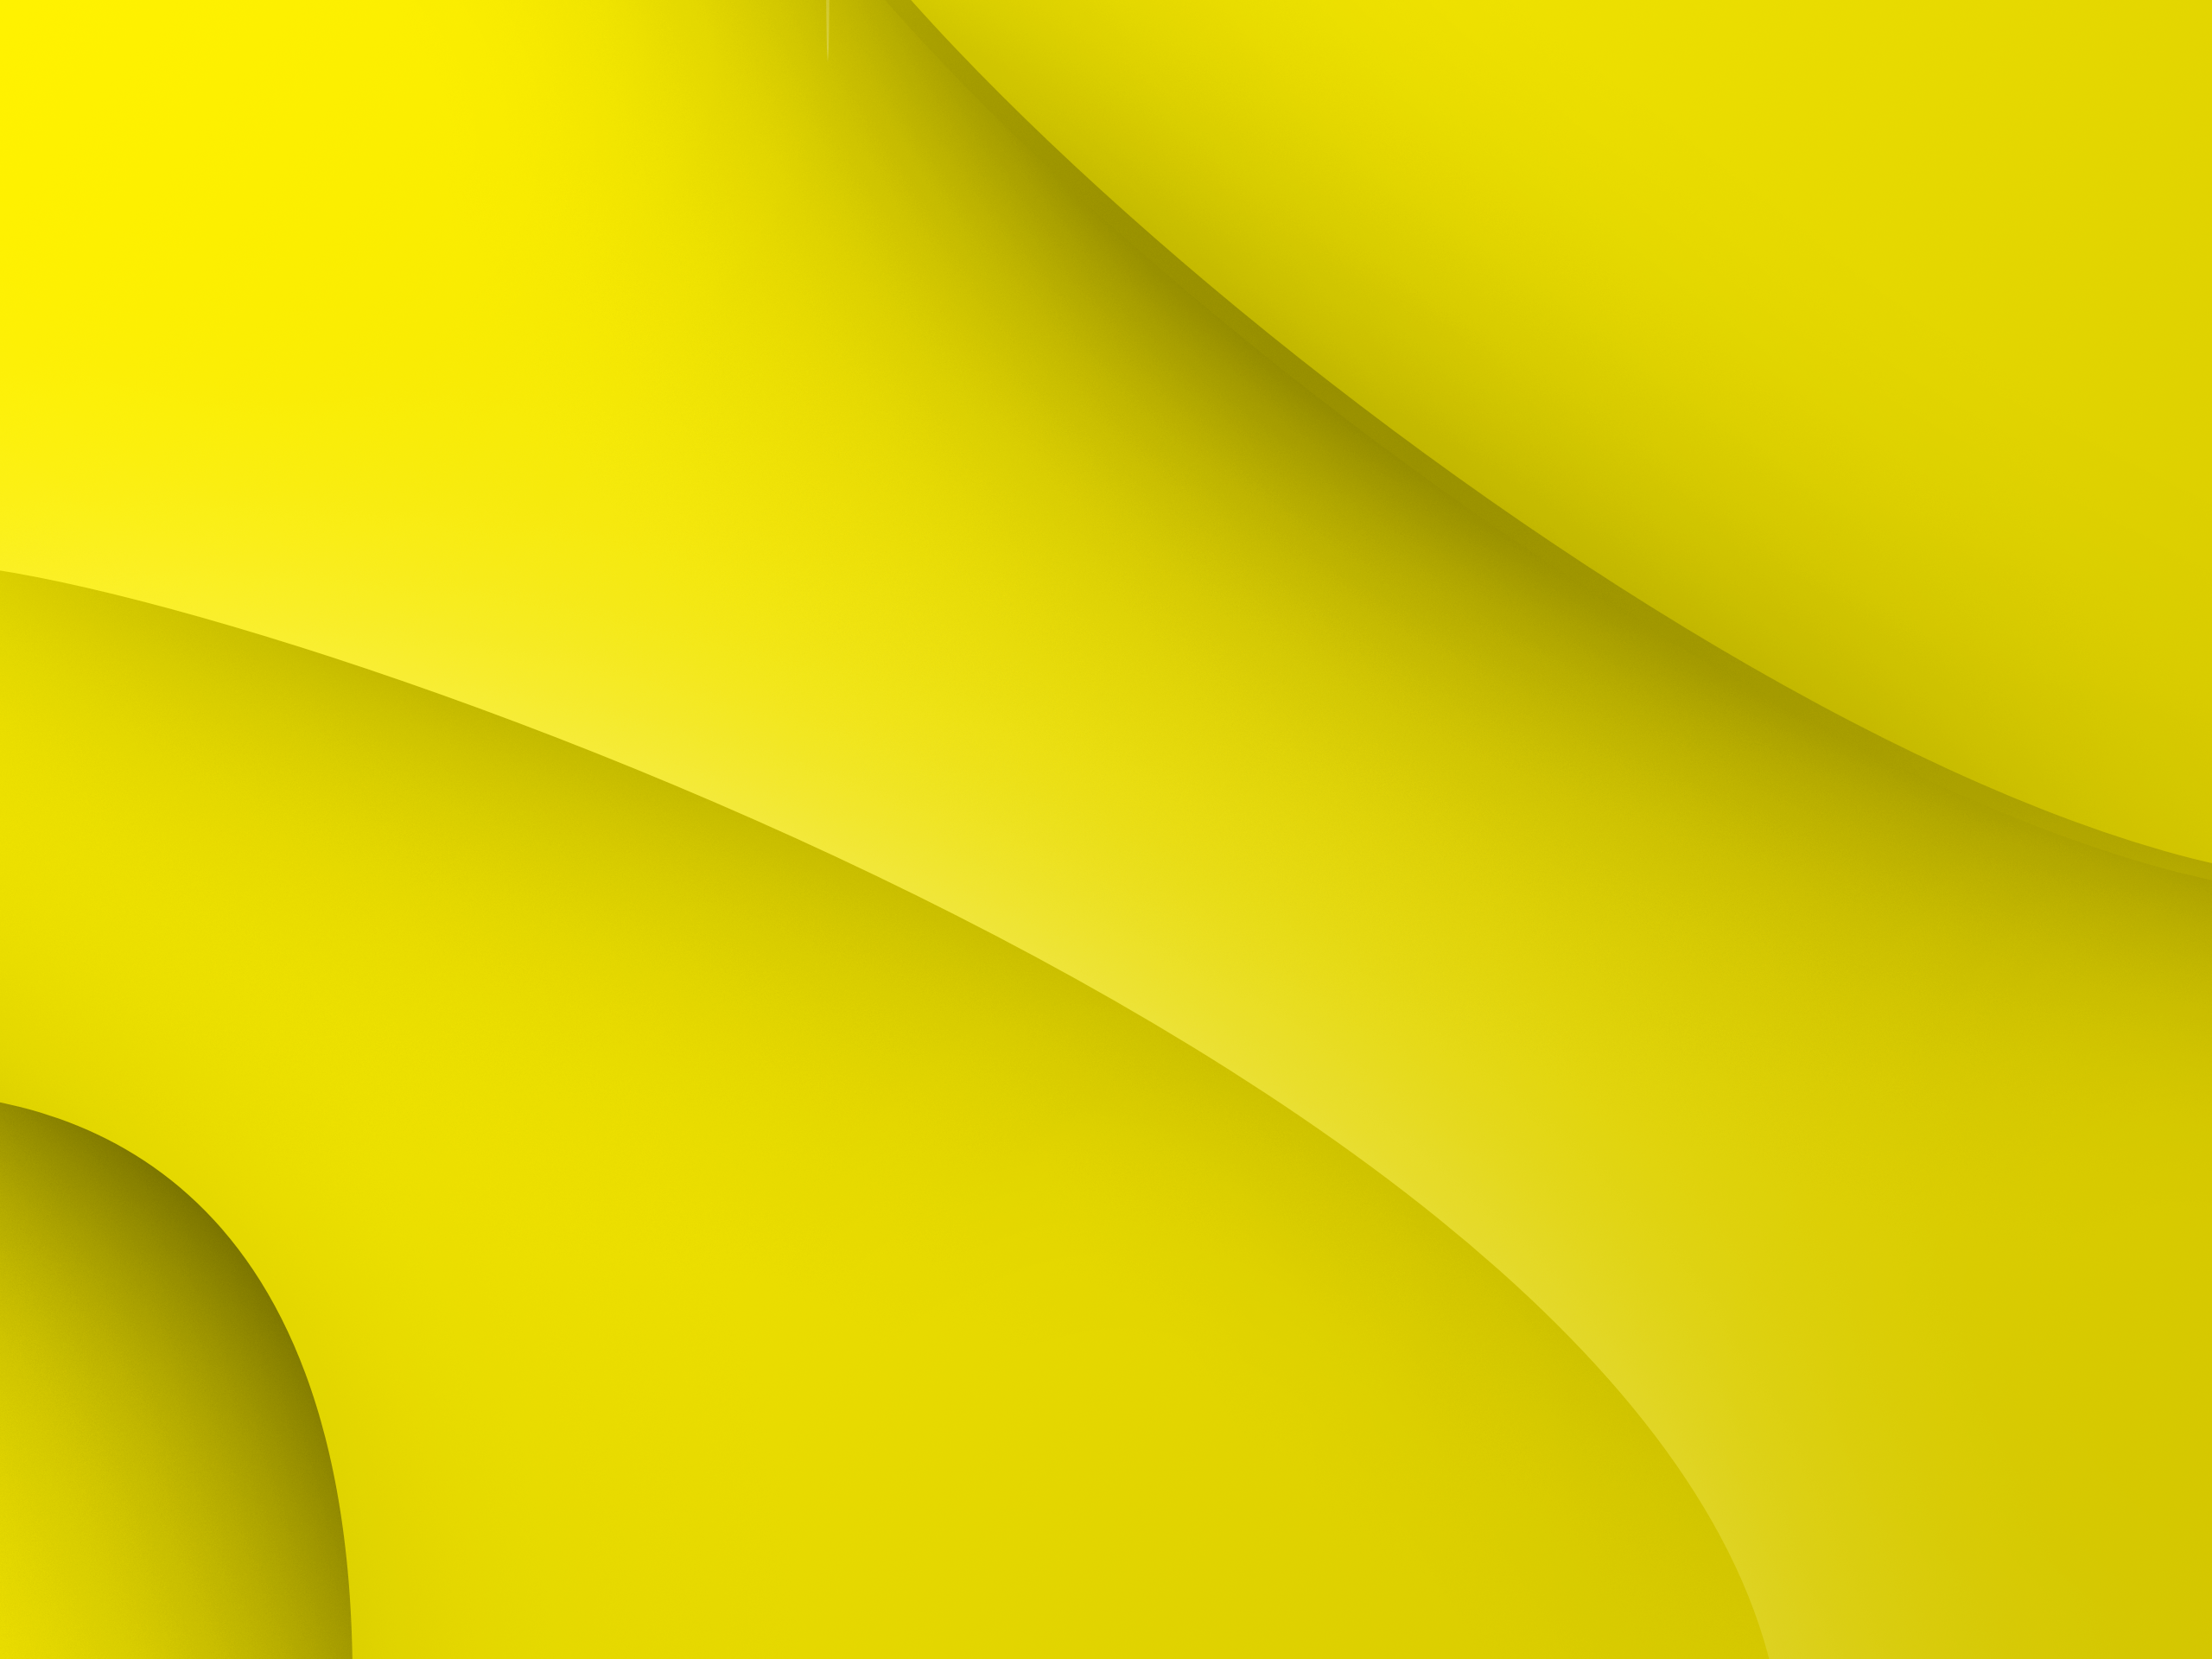 Bright Yellow Wallpaper 27 Yellow Hd Wallpapers  Backgrounds  Wallpaper Abyss